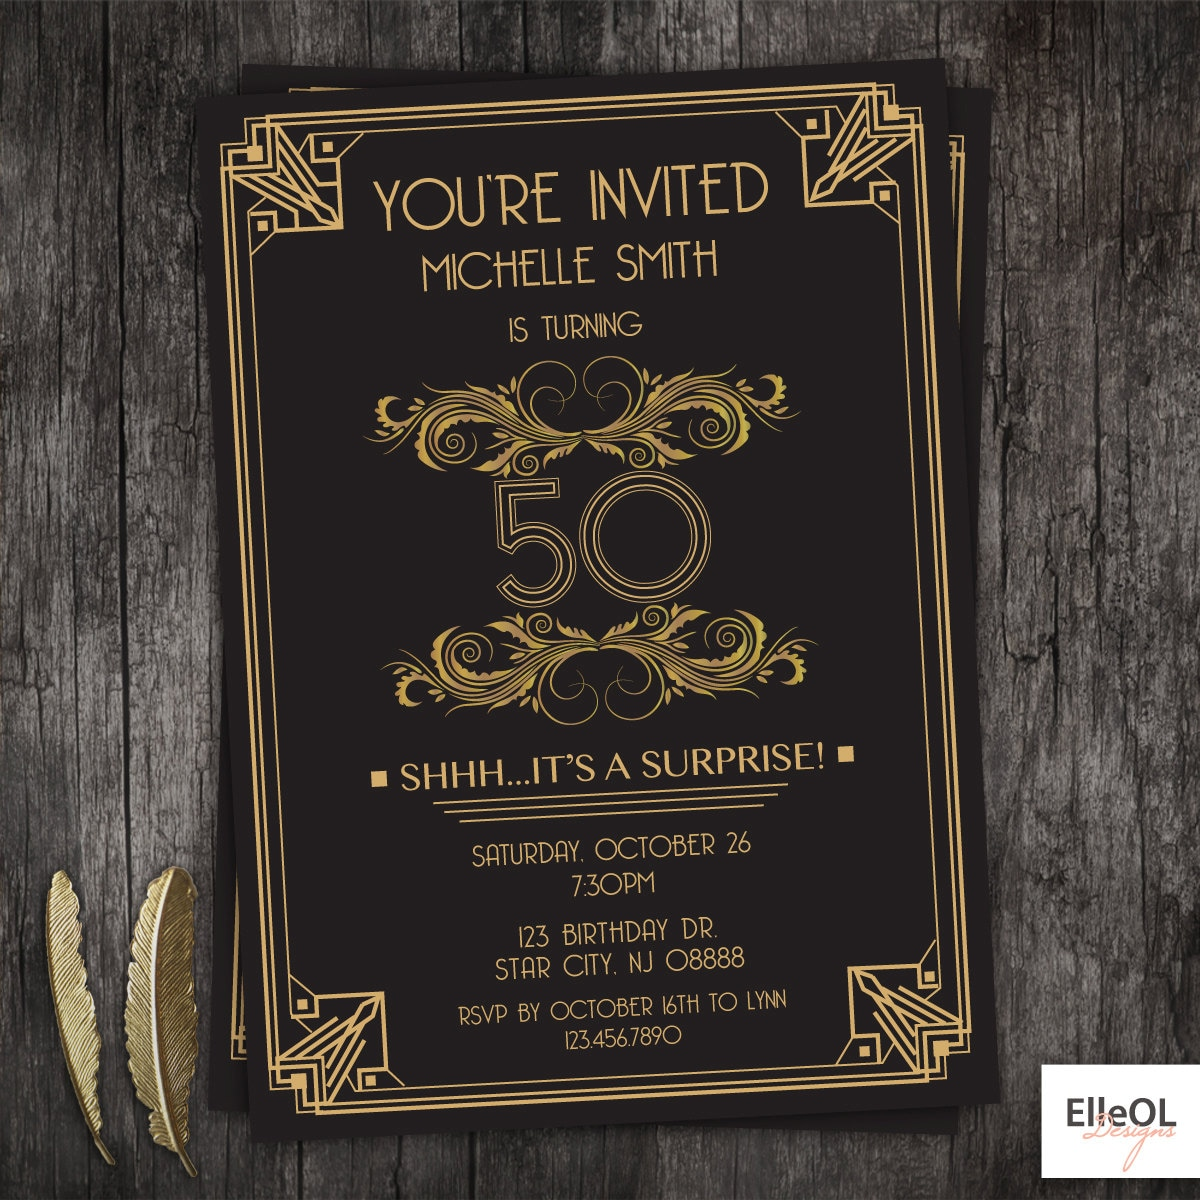 Great Gatsby Birthday Party Invitations - All The Best Invitation In ...